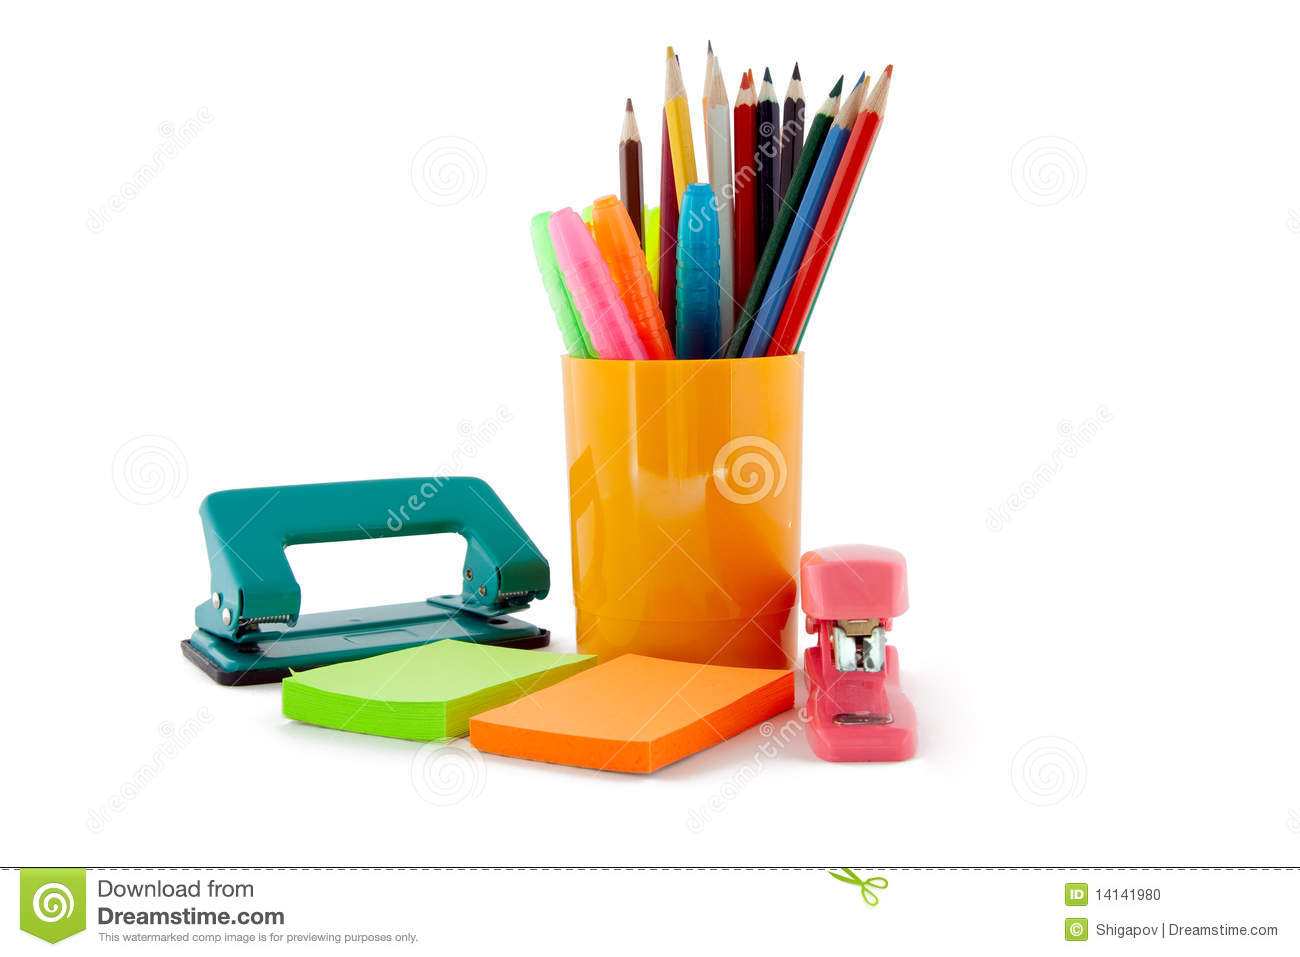 Stationery isolated on a white background.